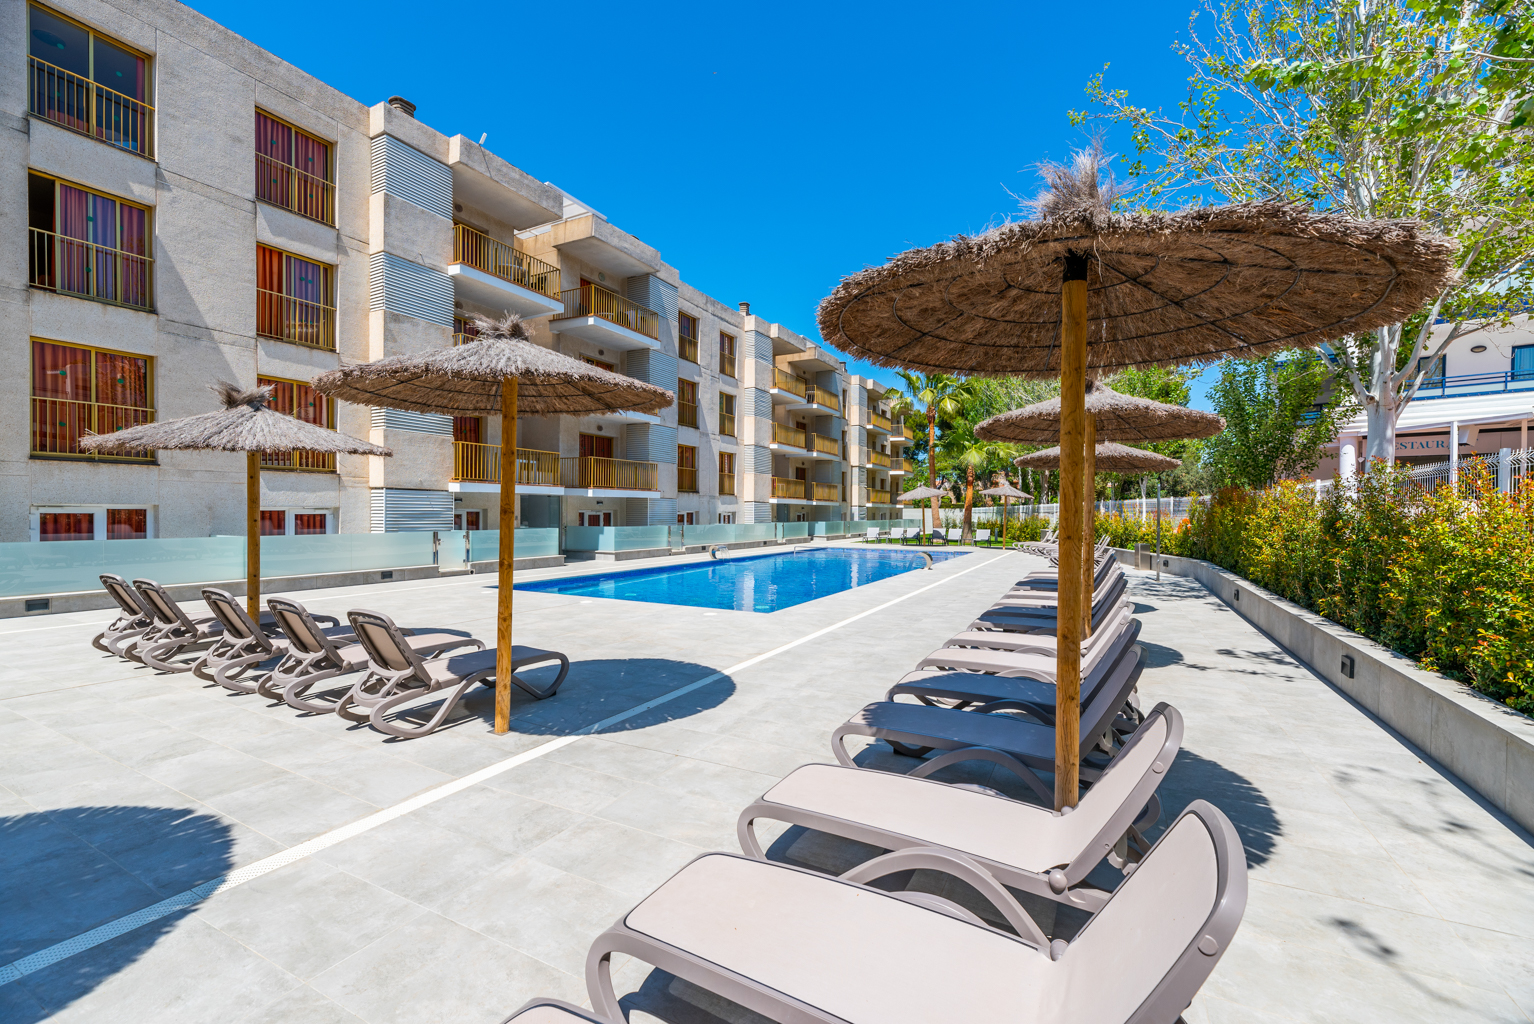 Apartments Pins Marina Cambrils - Solarium with free sun loungers